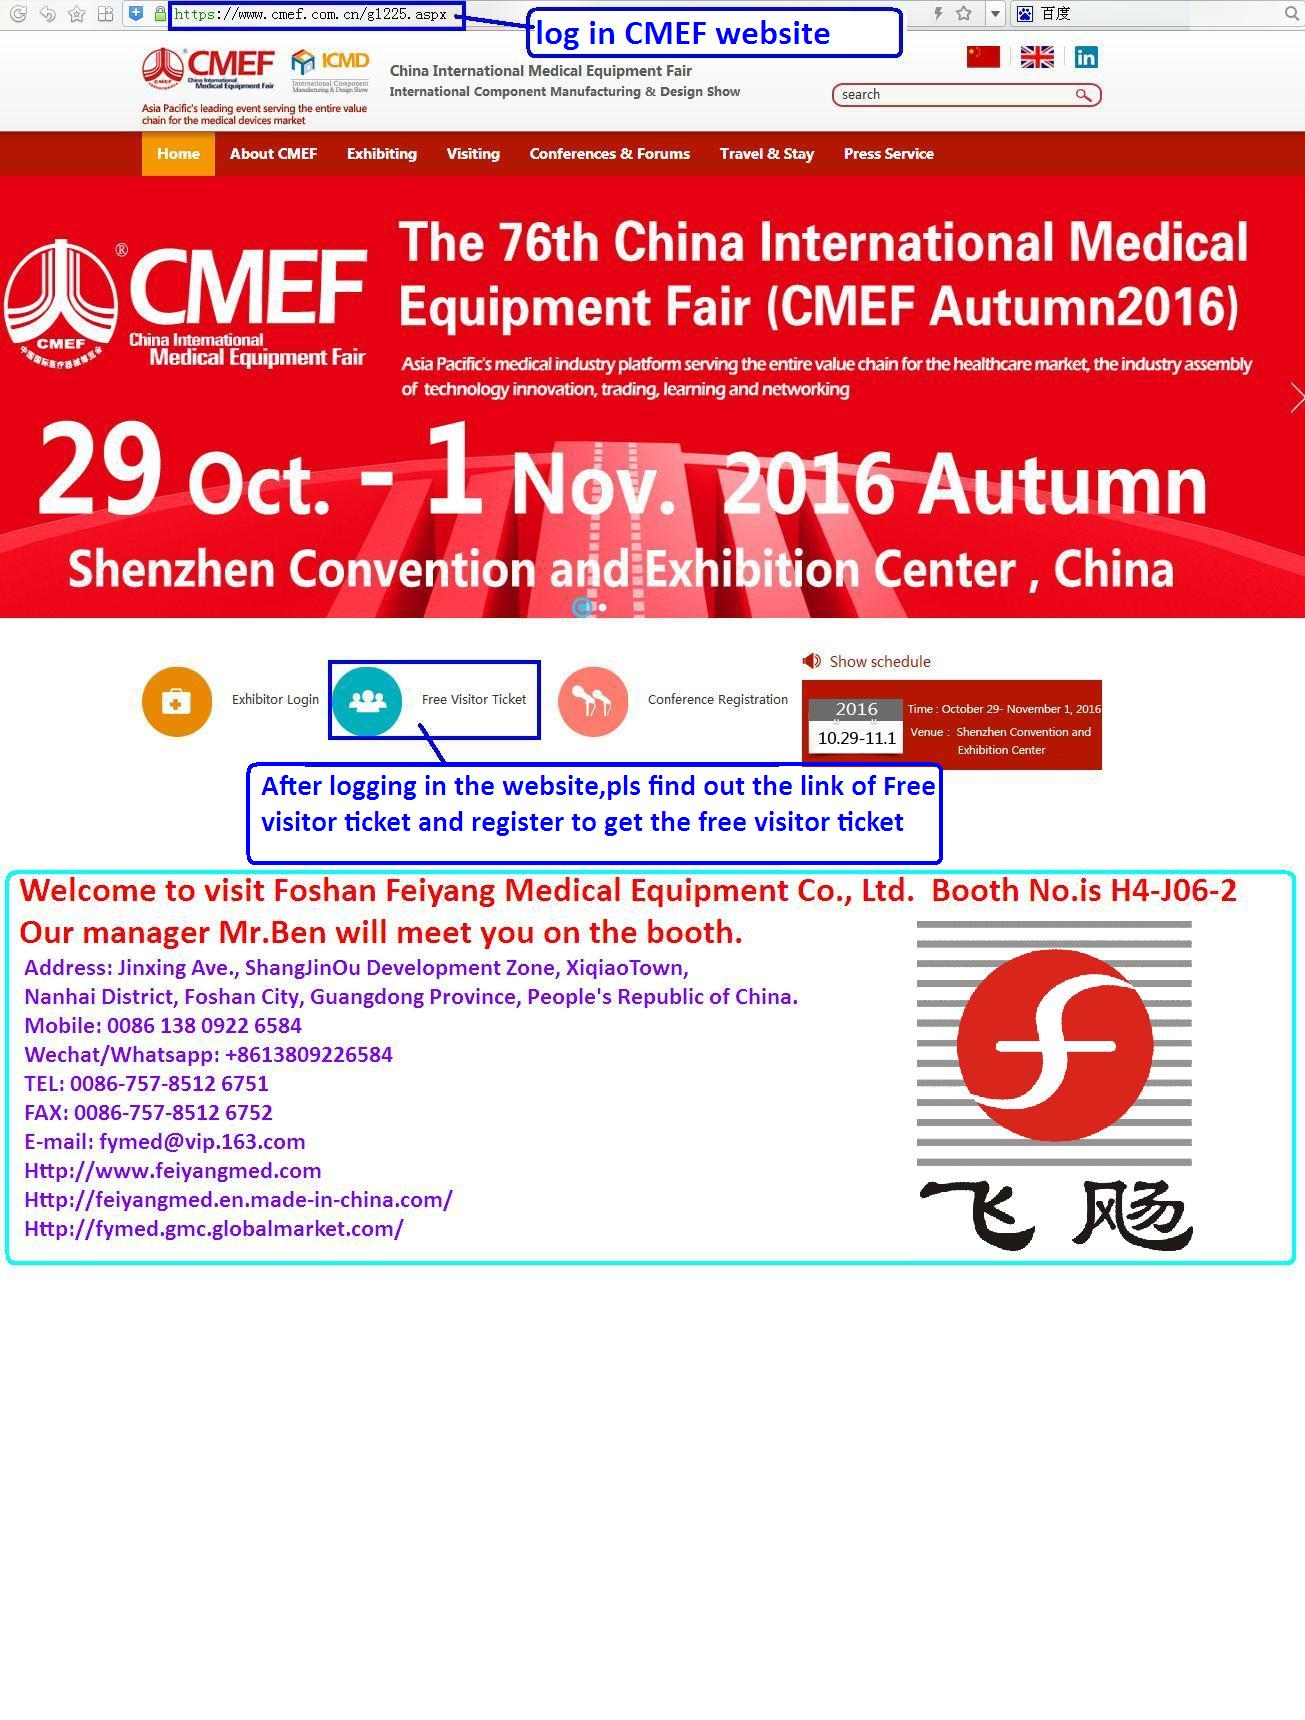 2016 SHENZHEN CMEF fair booth No. H4-J06-2 (Oct.29 to Nov.1 2016)